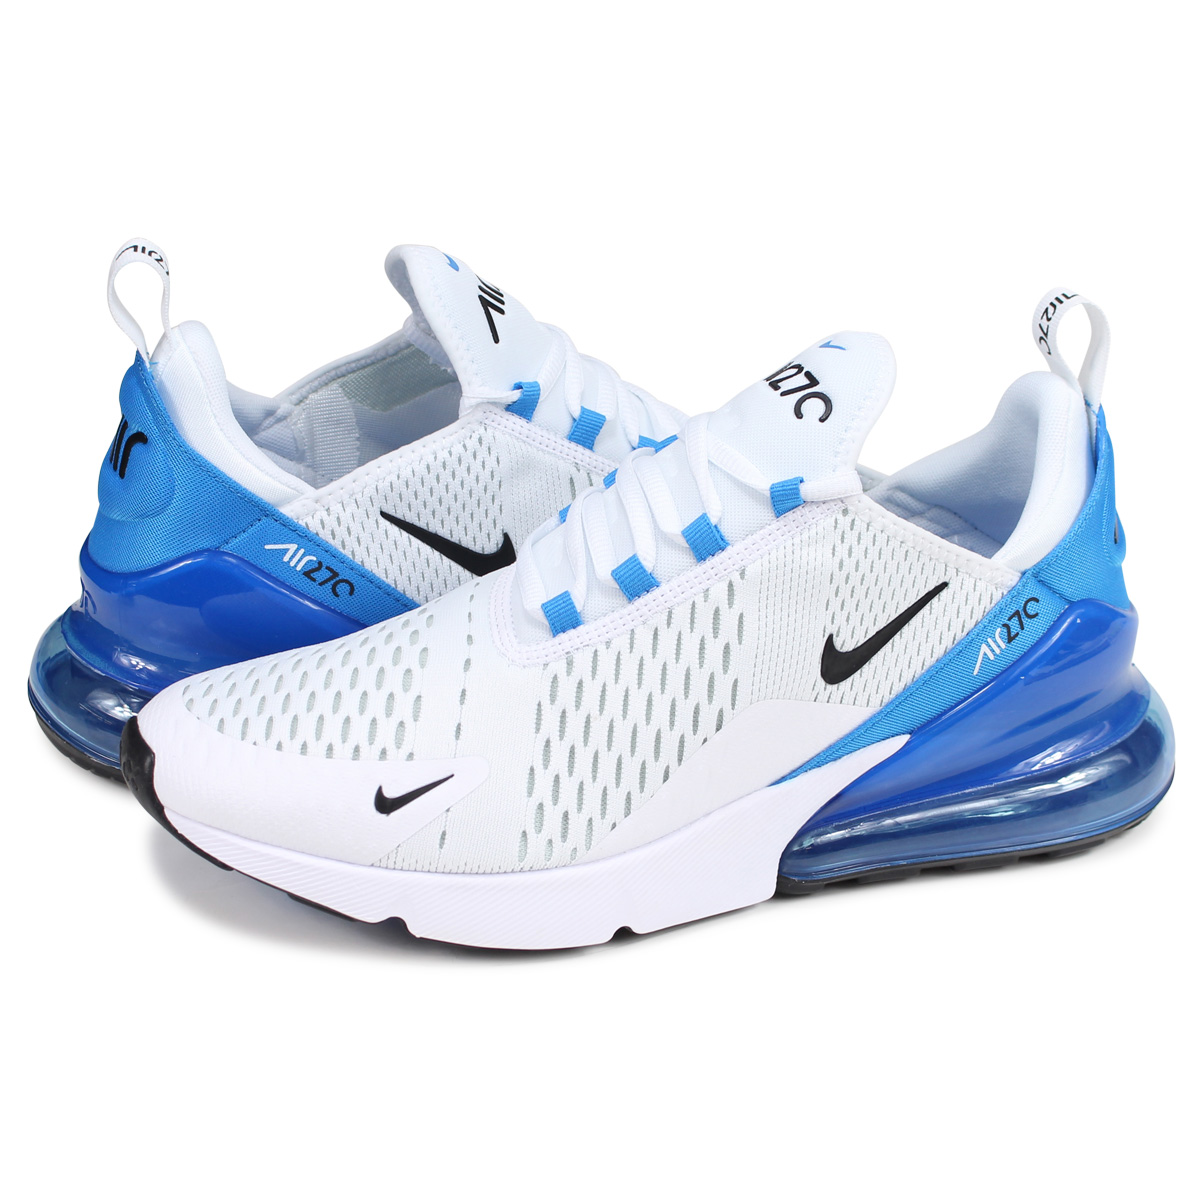 the latest 28a96 ffbda Nike NIKE Air Max 270 sneakers men AIR MAX 270 white white AH8050-110 [196]